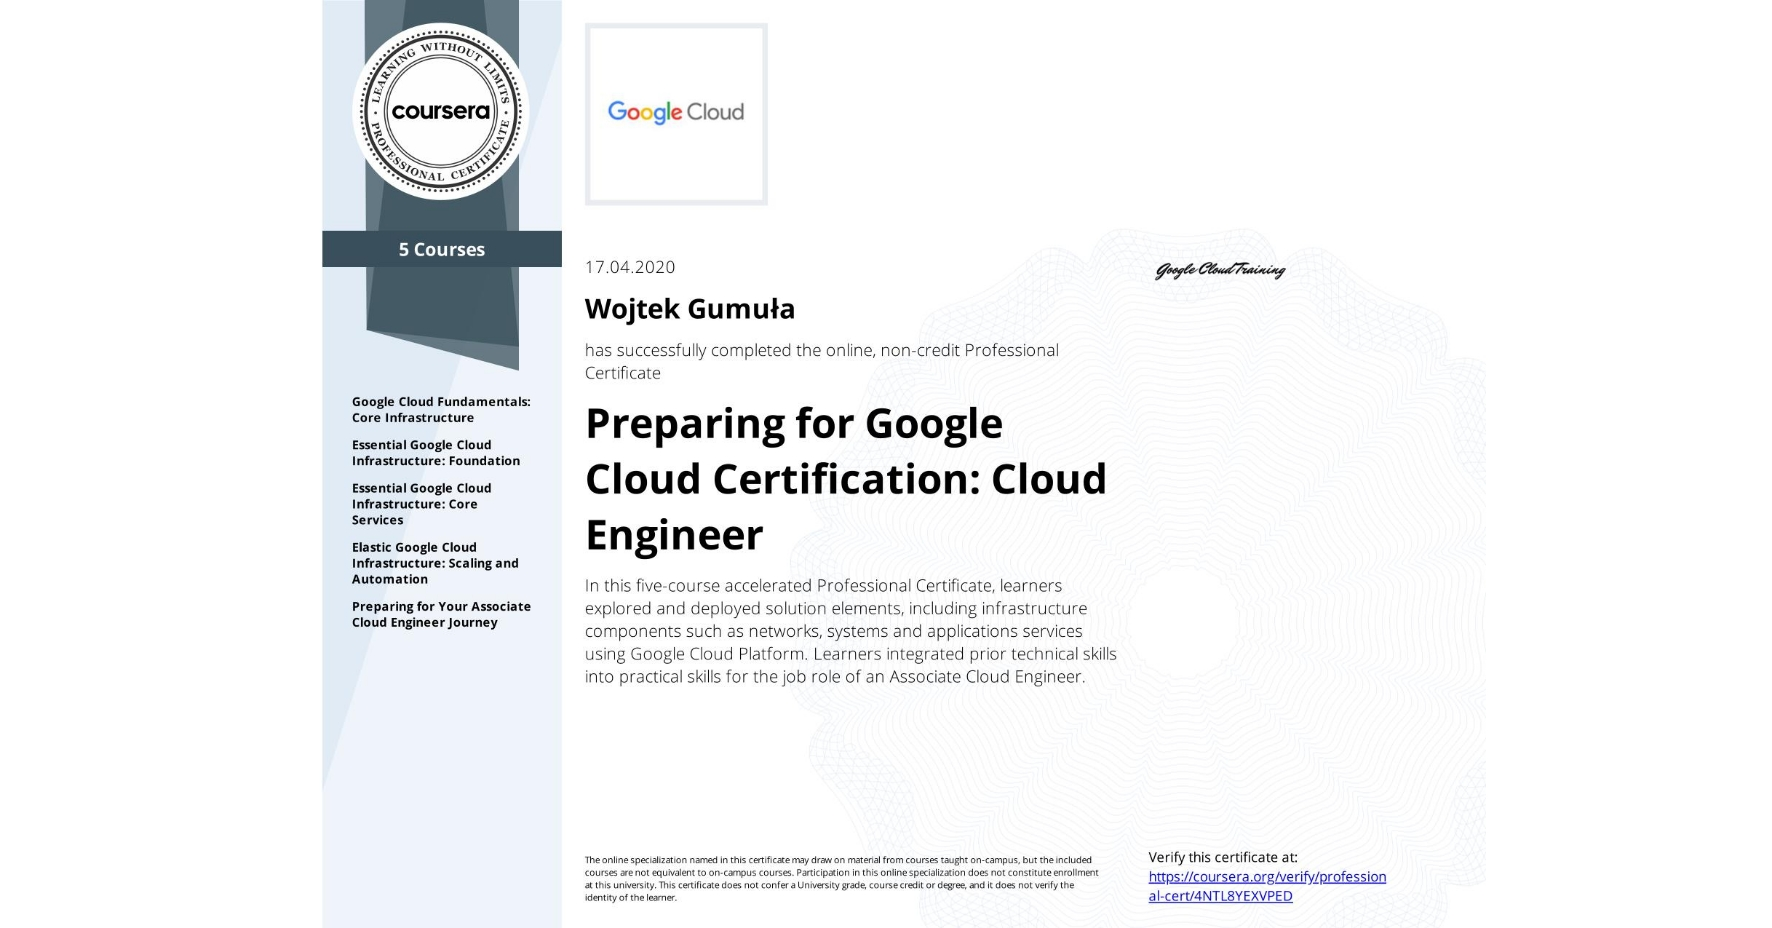 View certificate for Wojtek Gumula, Preparing for Google Cloud Certification: Cloud Engineer, offered through Coursera. In this five-course accelerated Professional Certificate, learners explored and deployed solution elements, including infrastructure components such as networks, systems and applications services using Google Cloud Platform. Learners integrated prior technical skills into practical skills for the job role of an Associate Cloud Engineer.